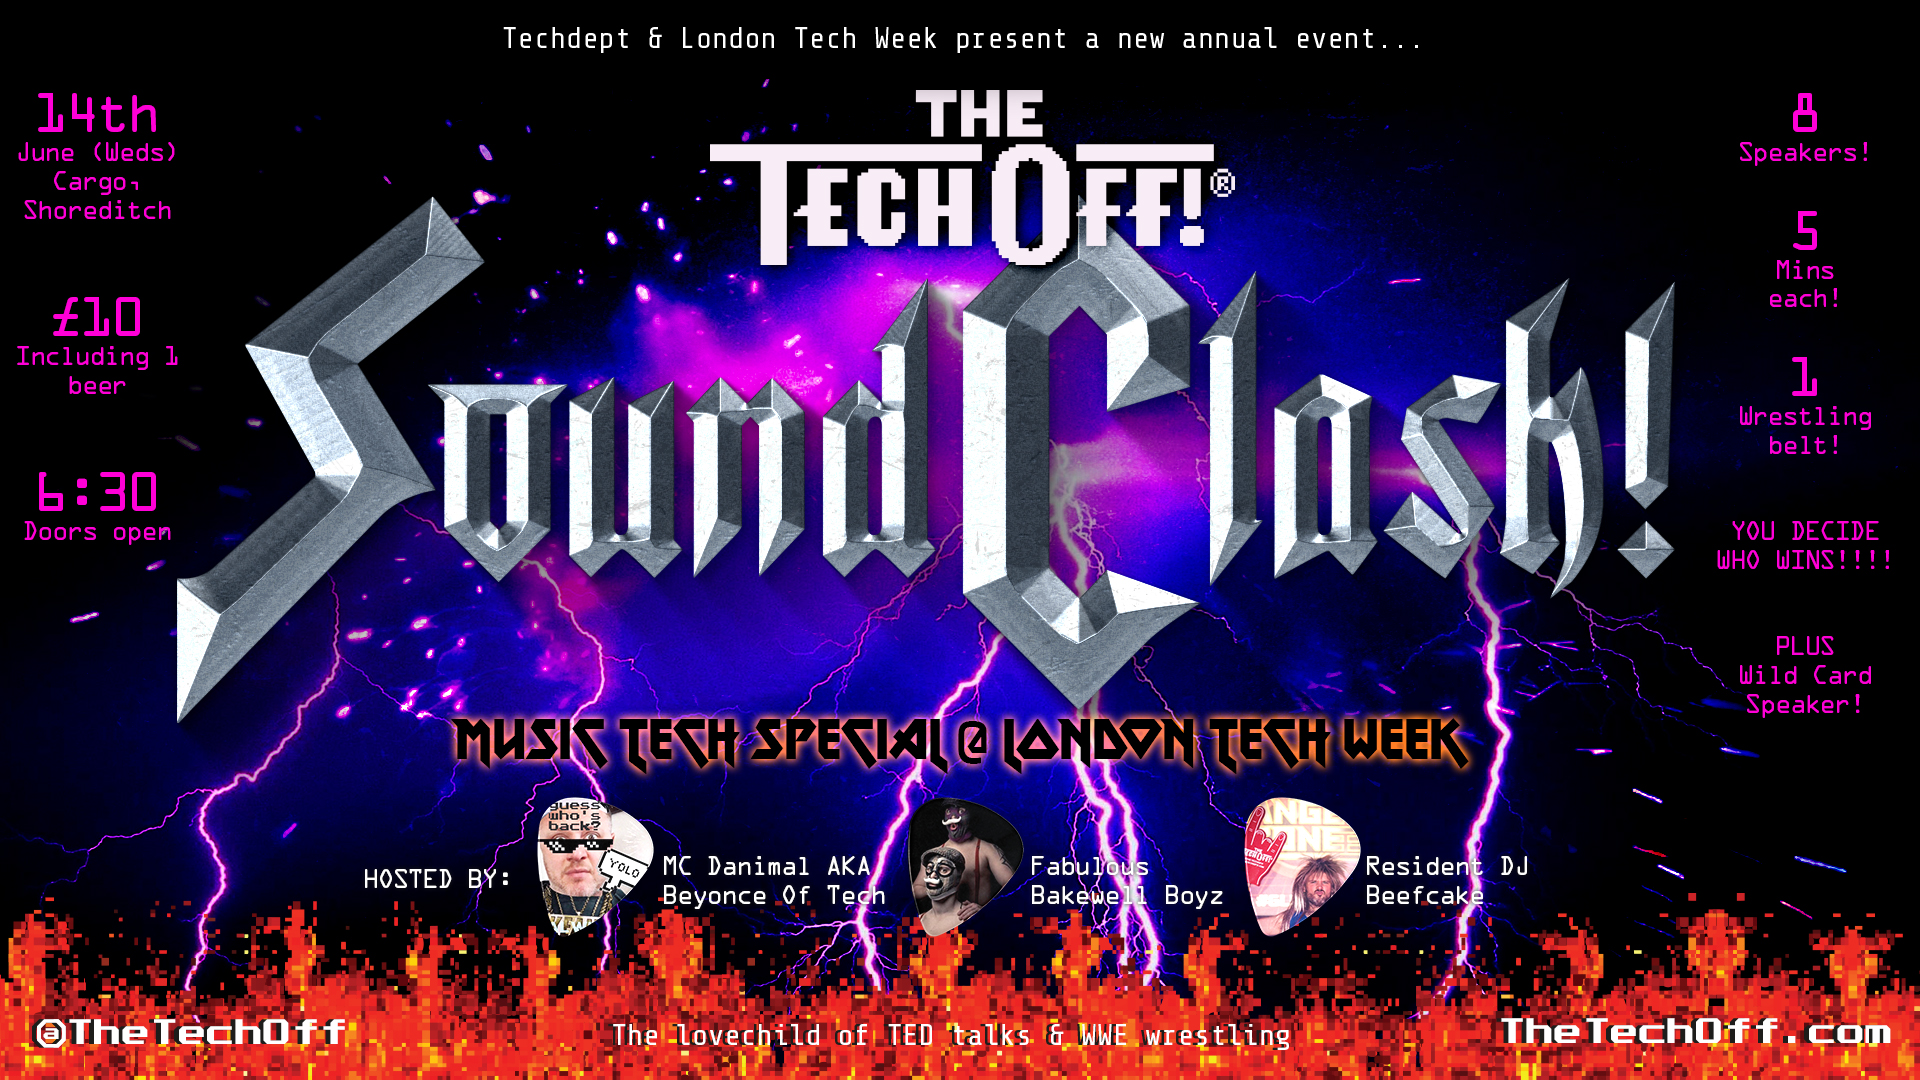 Countdown to The Tech Off: Soundclash!